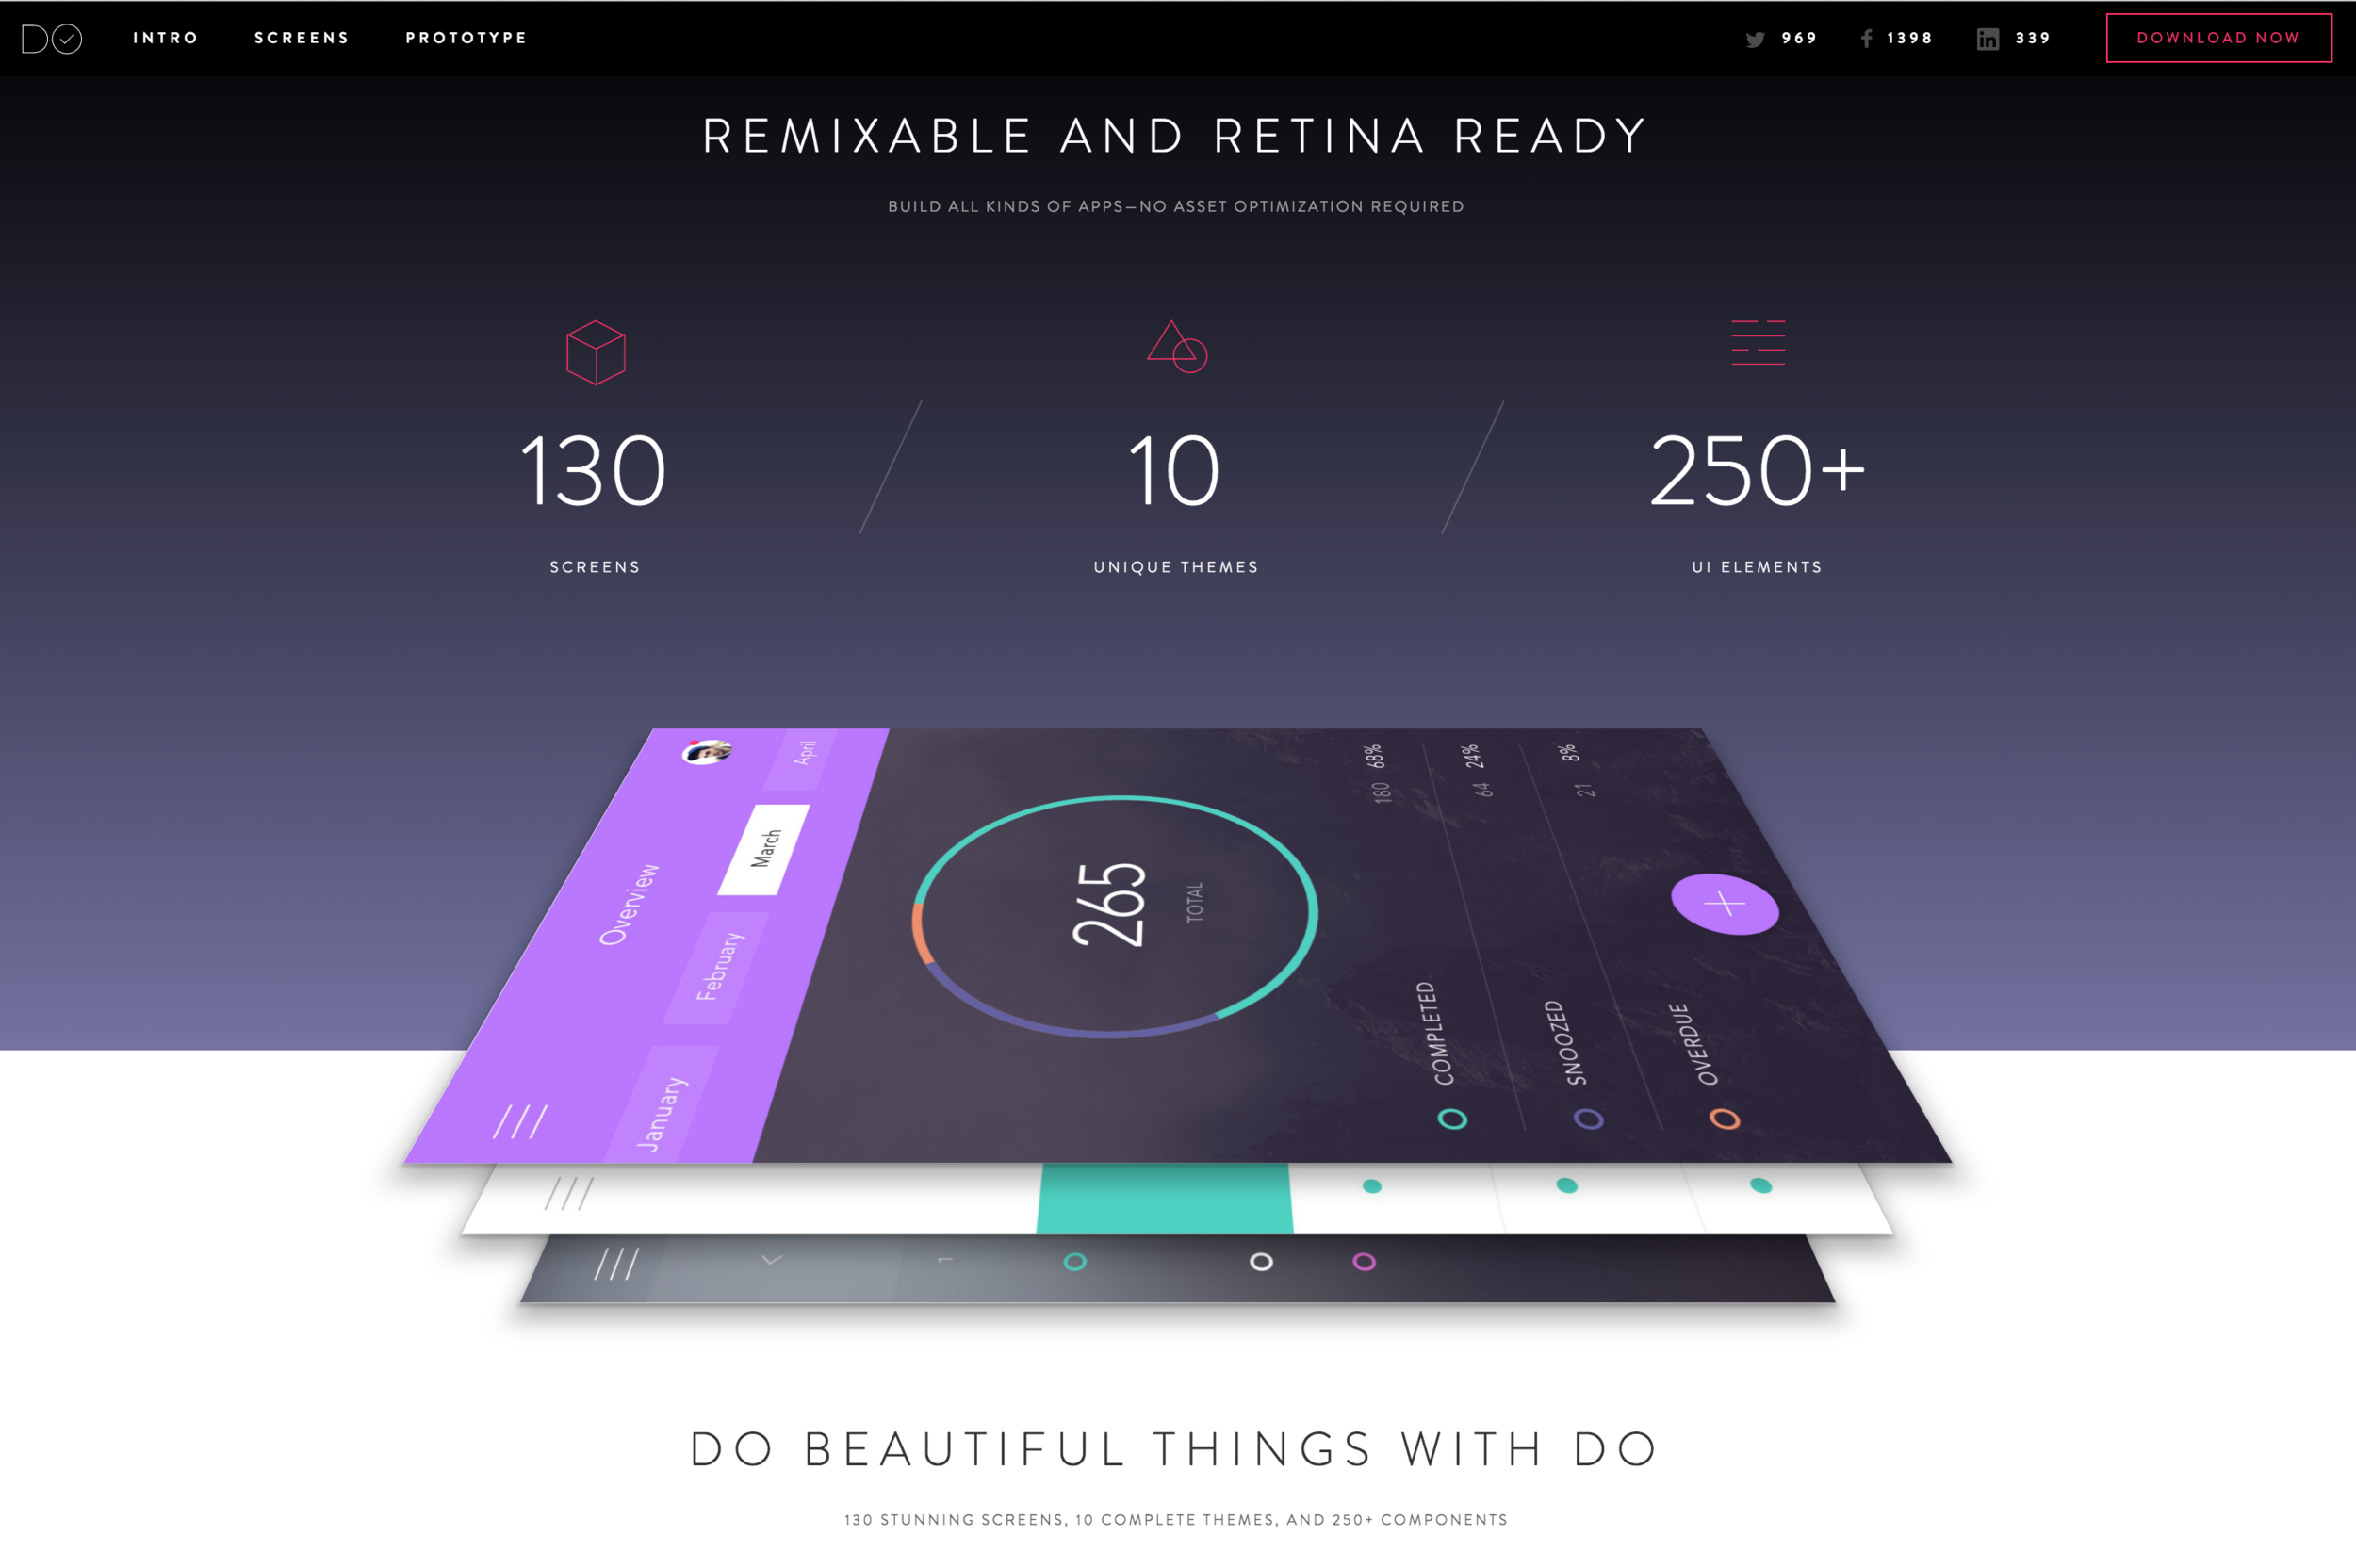 DO UI Kit: The most versatile to-do app UI kit you've ever seen.